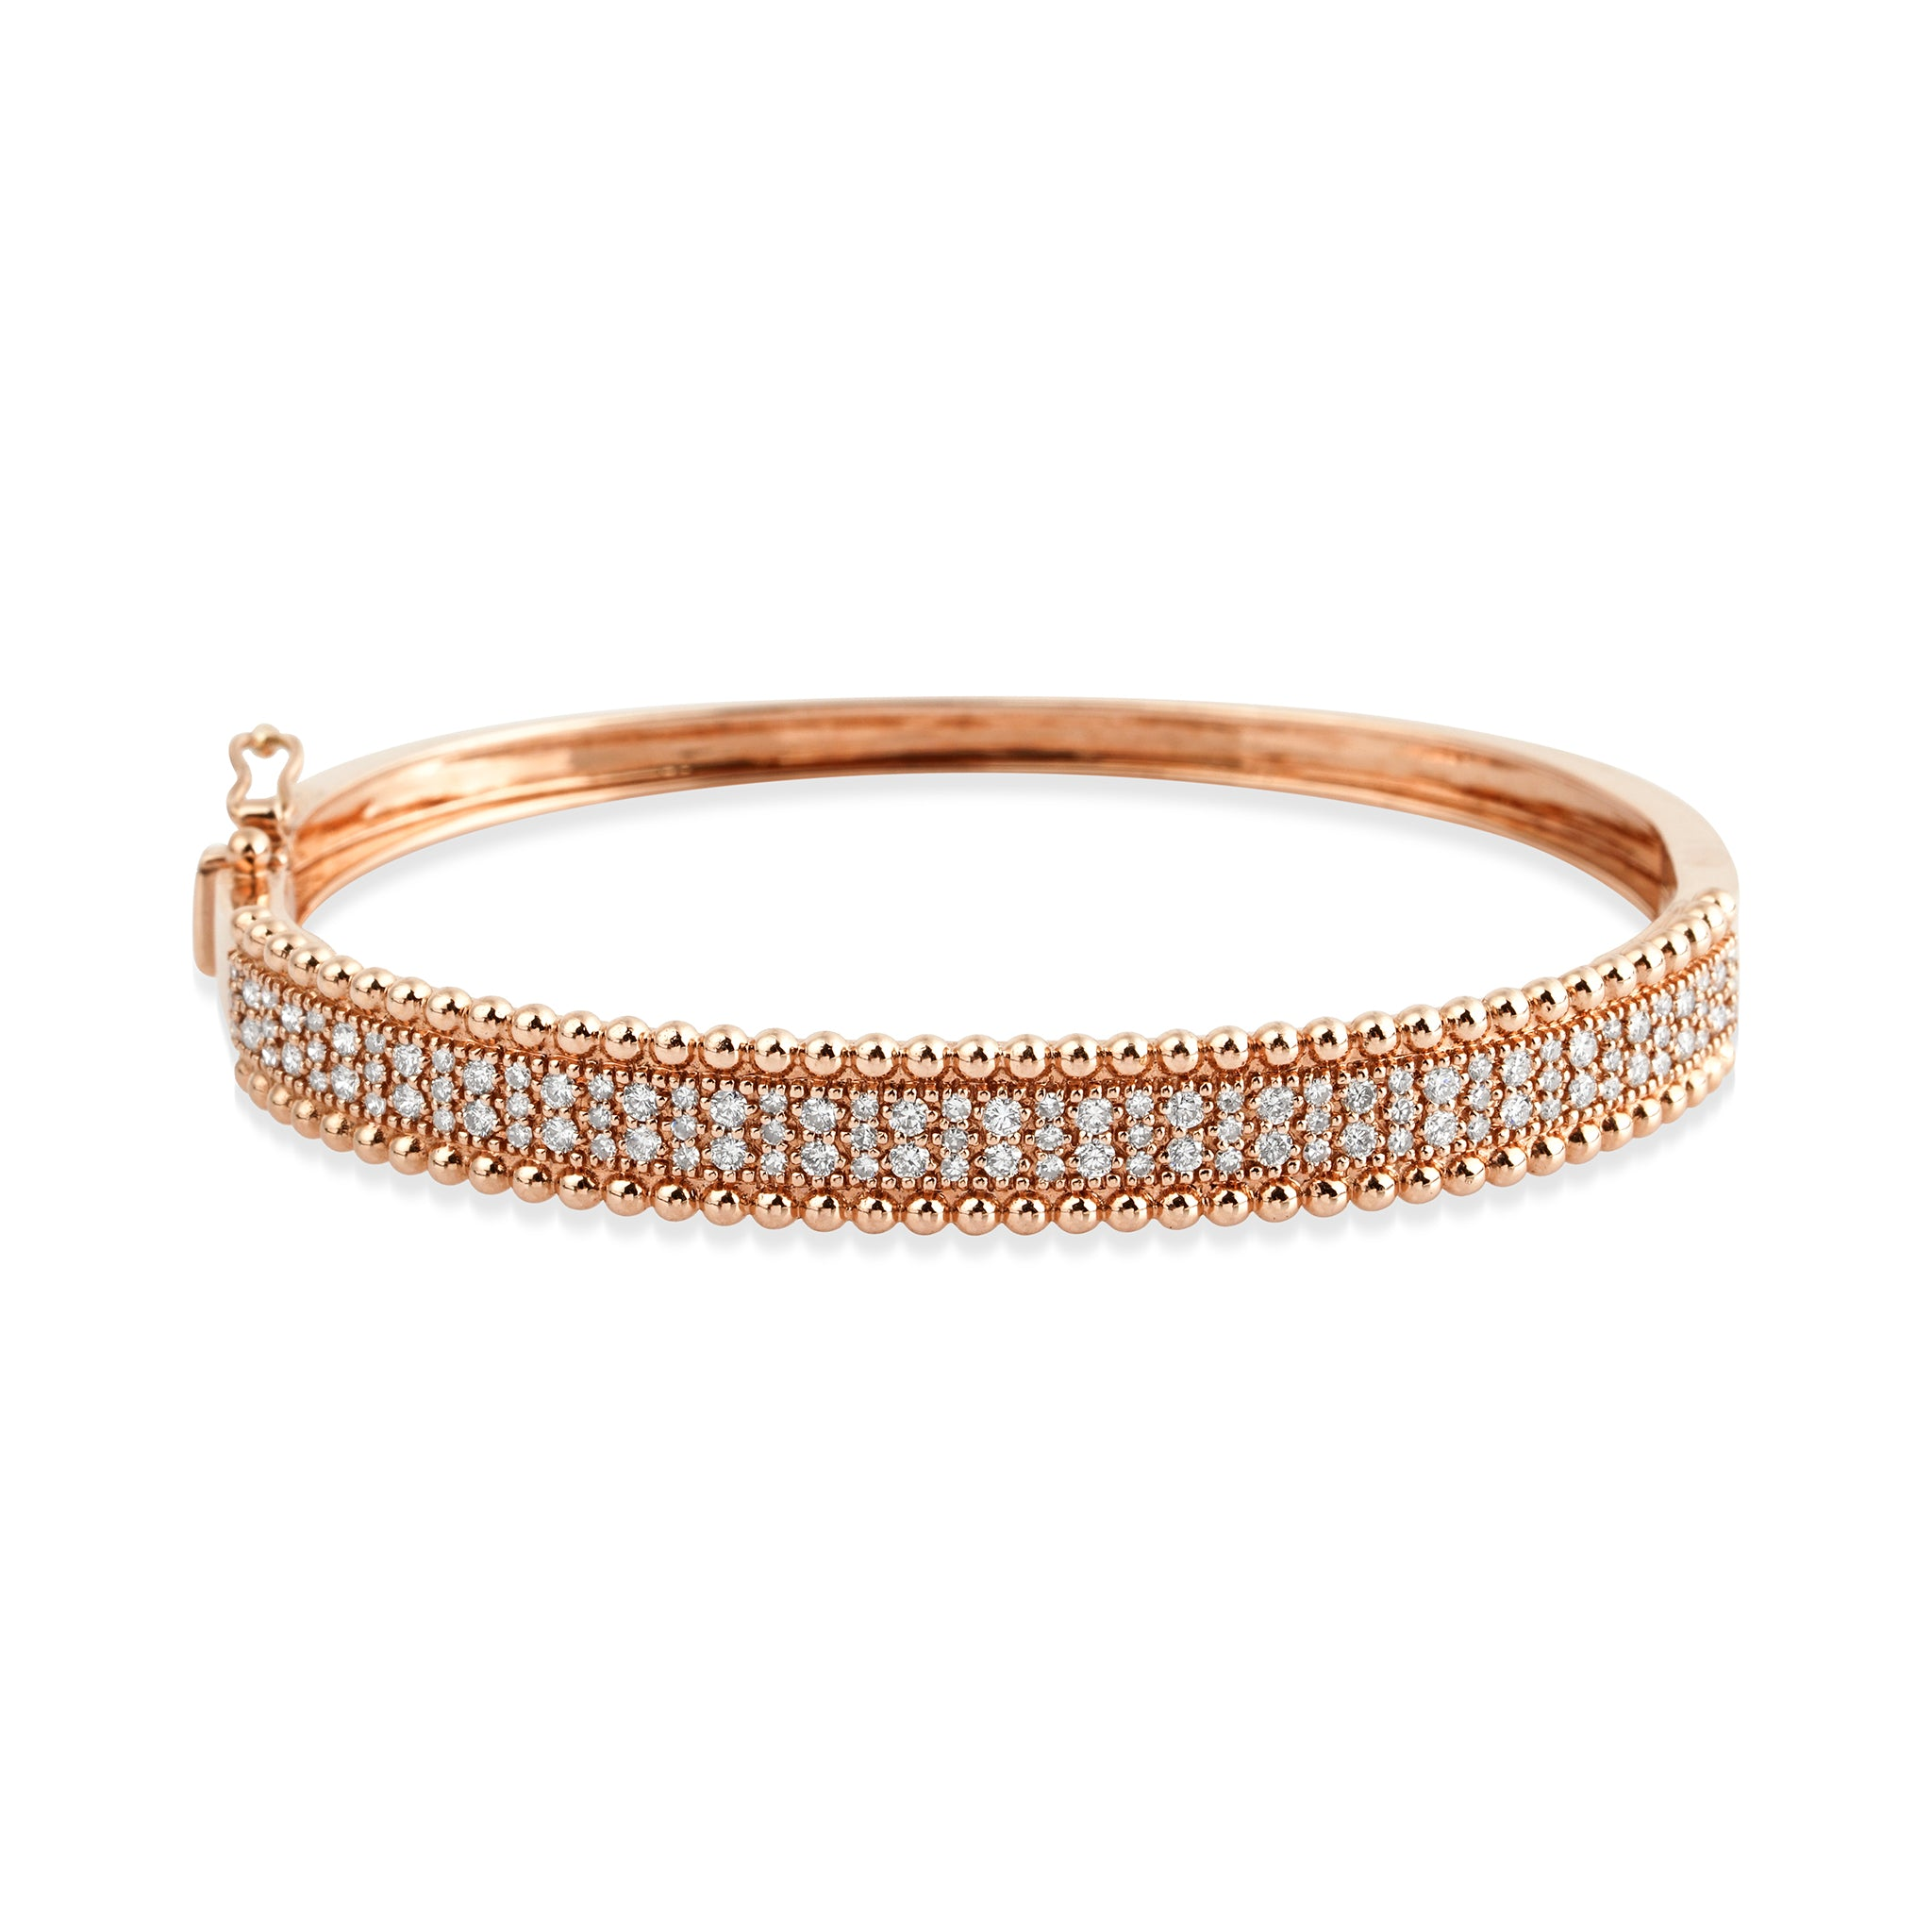 14KT Rosegold Diamond LUXE Bangle Bracelet, NEW - DilaraSaatci